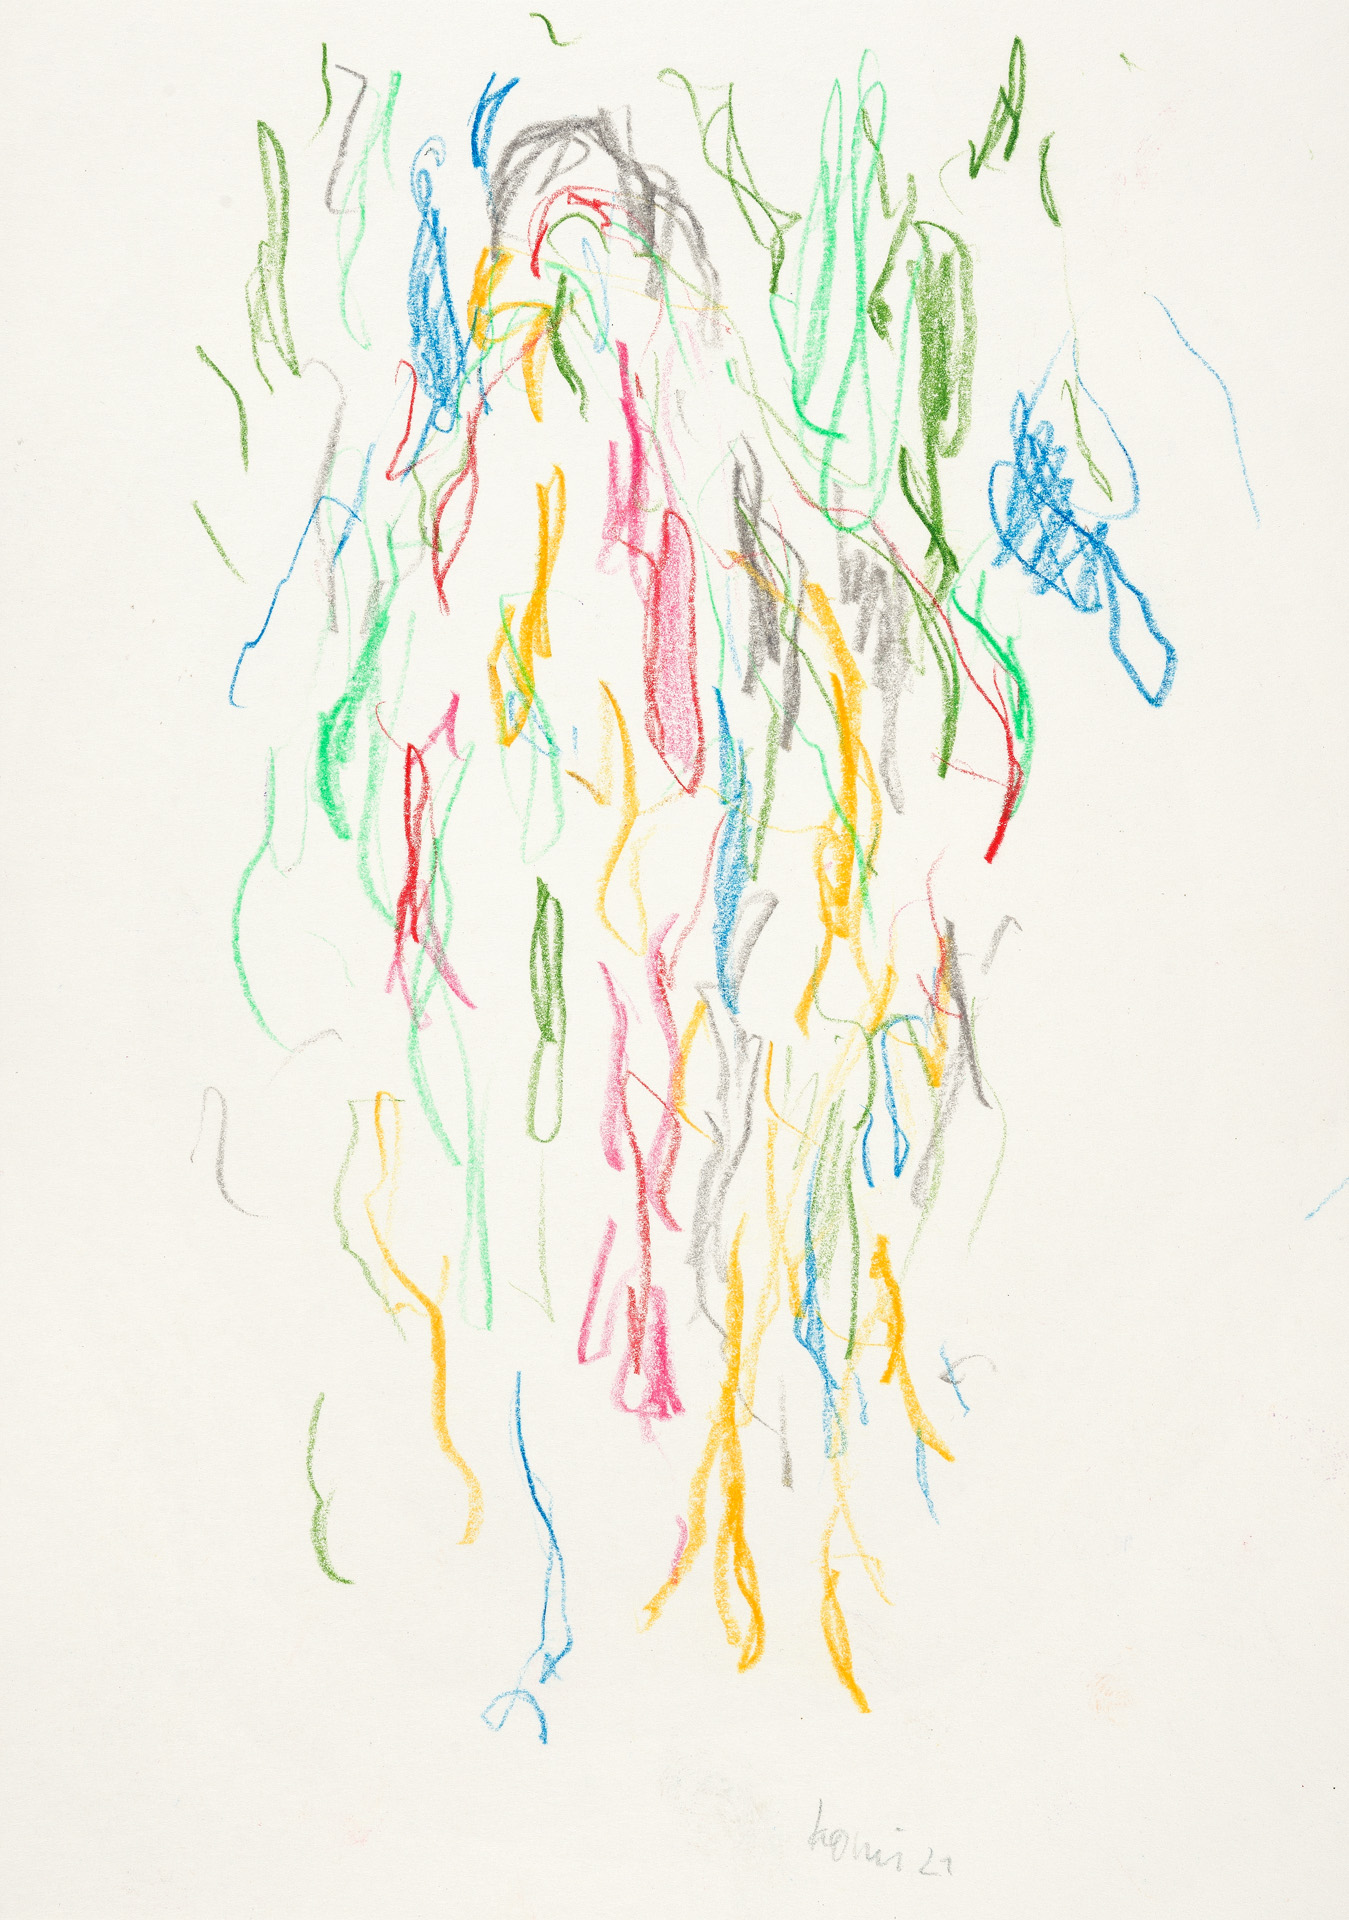 Uwe Kowski –in Farbe, 2021, color pencil on paper, 21 x 14.9 cm